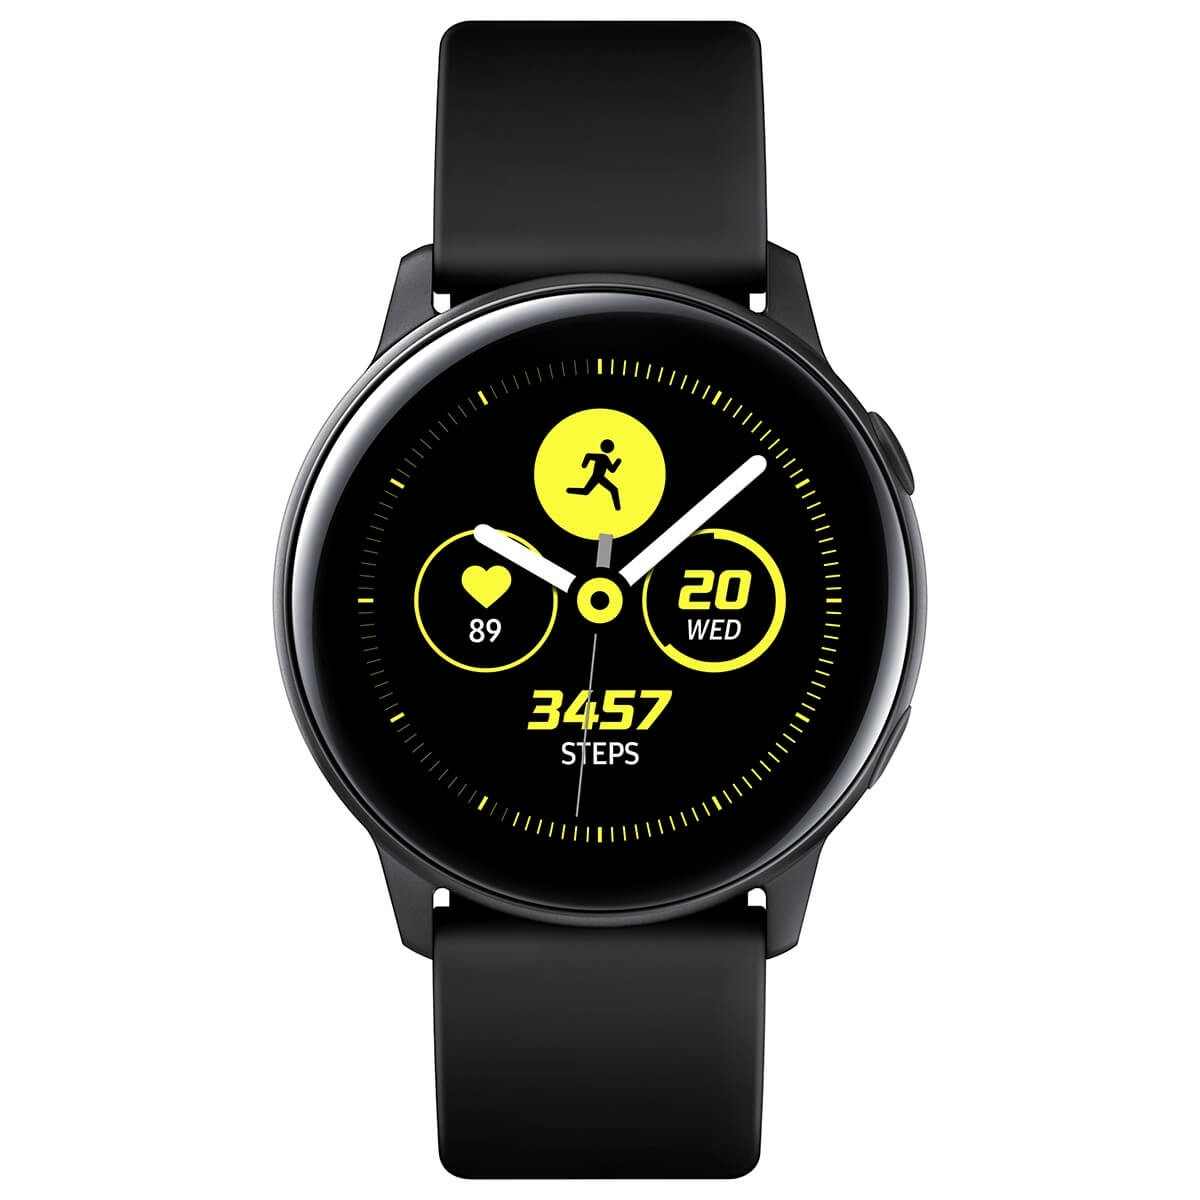 Samsung Galaxy Watch Active - Black 1